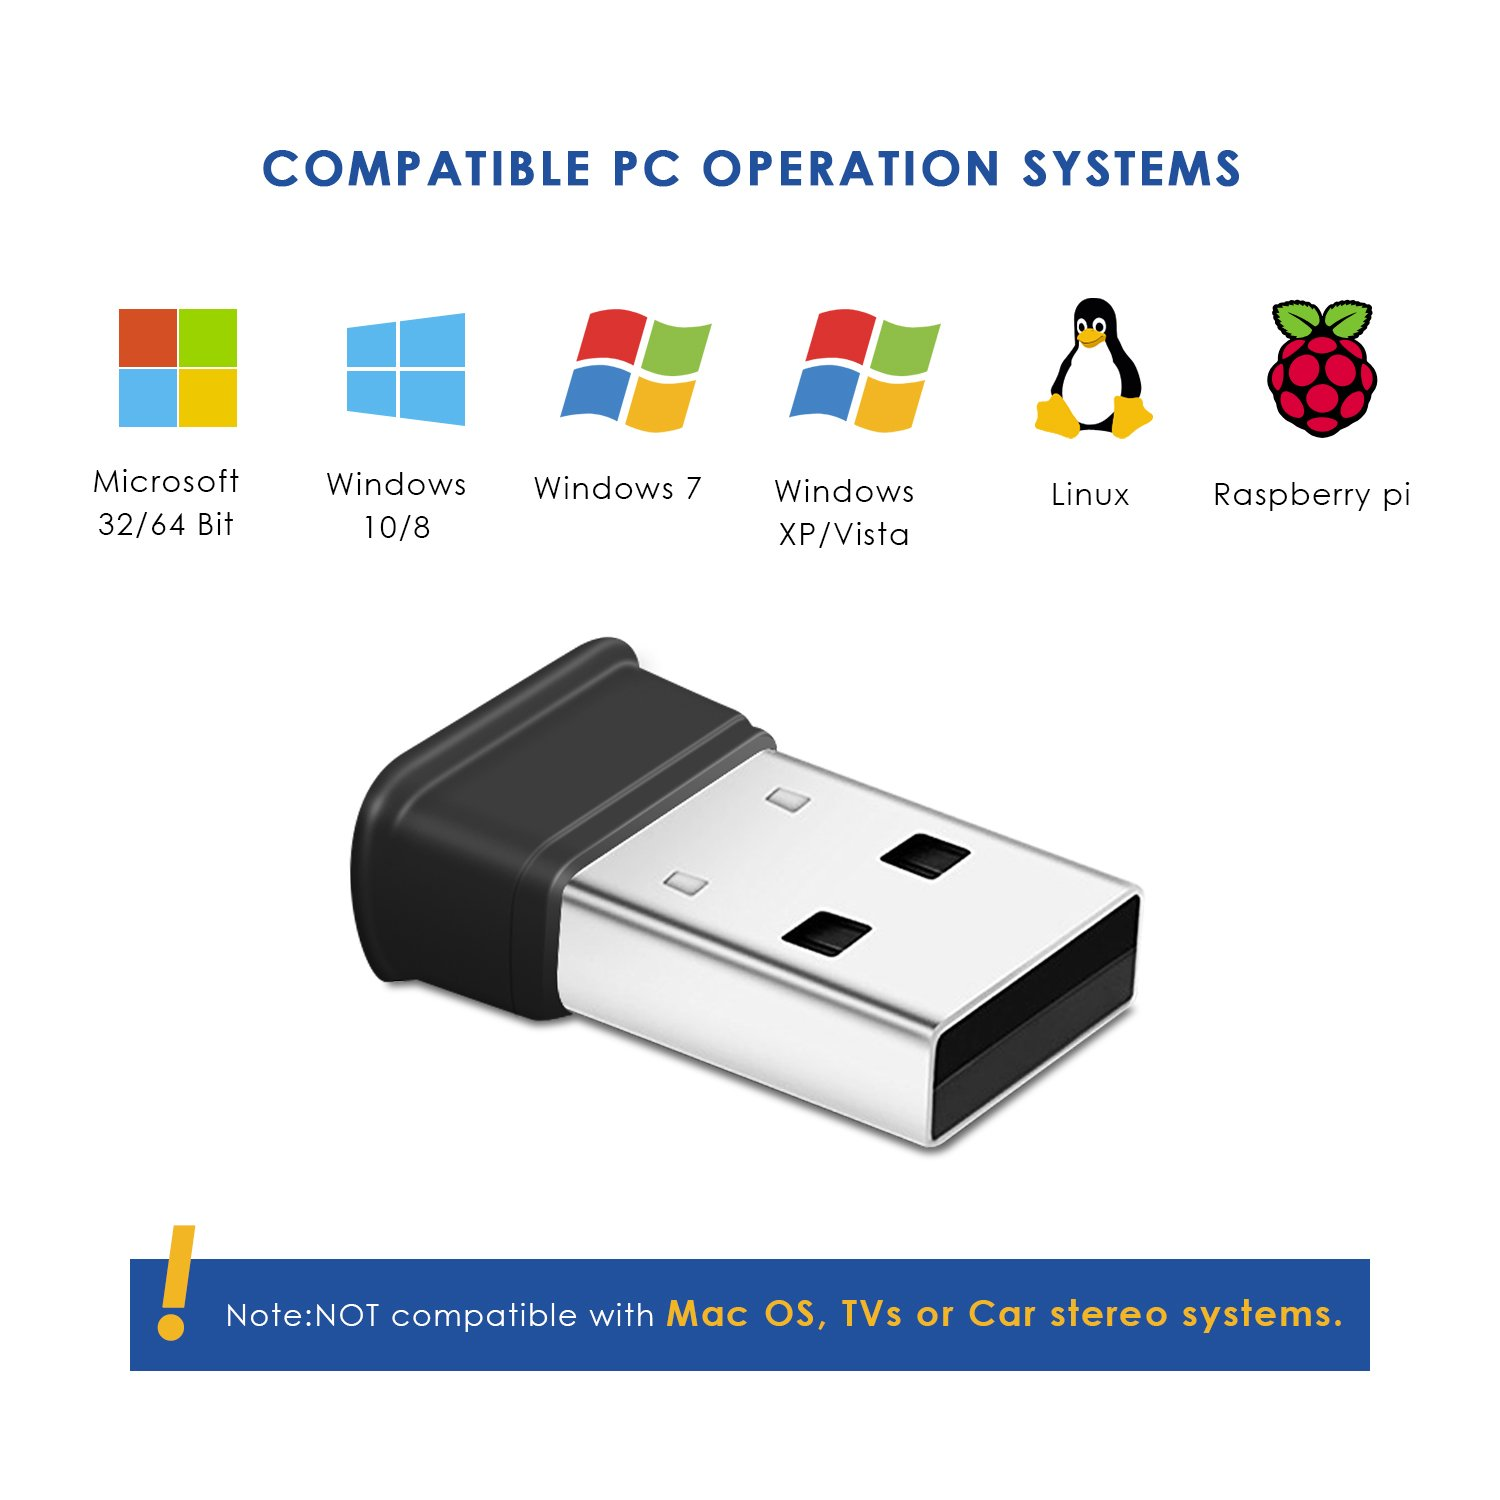 Bluetooth USB Adapter, Bluetooth 4.0 USB Dongle, Low Energy for PC, Wireless Bluetooth Dongle for PC Laptop Desktop Computer, Compatible with Windows 10, 8.1, 8, 7, Vista, XP, Linux and Raspberry PI by HIGHEVER (Image #1)